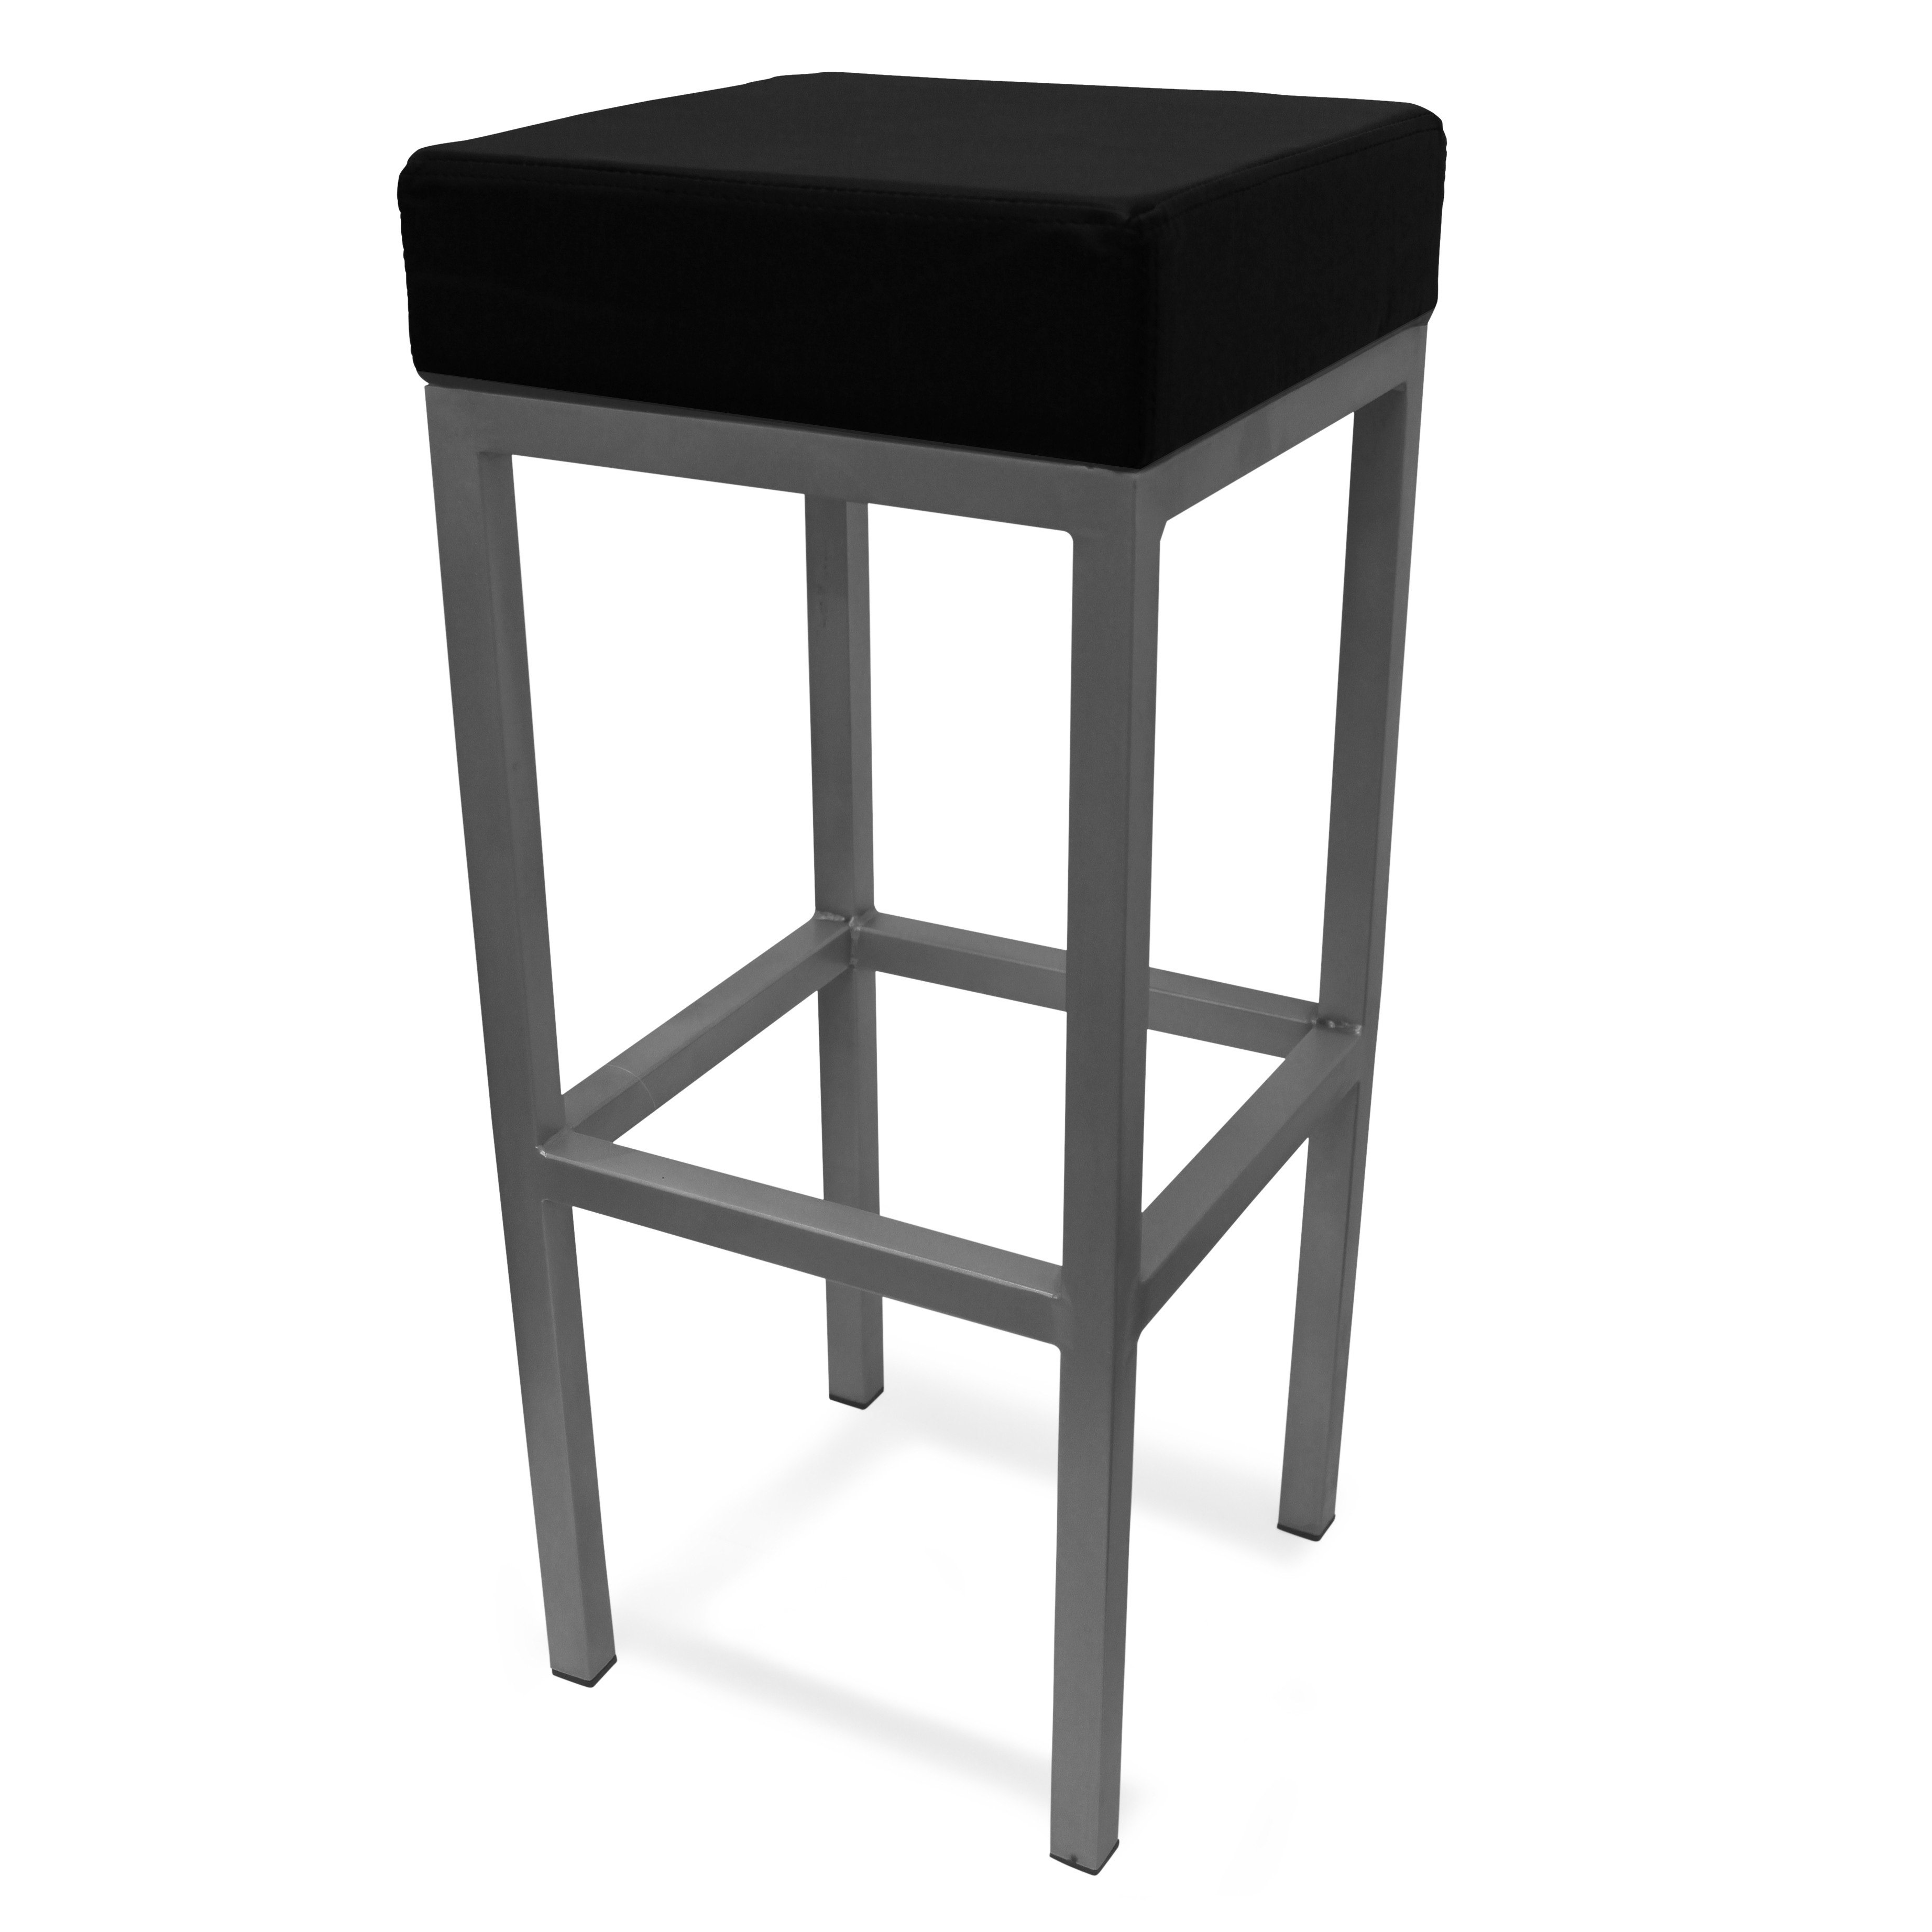 No.3 Best Selling Product In This Category: Cube Bar Stool Black